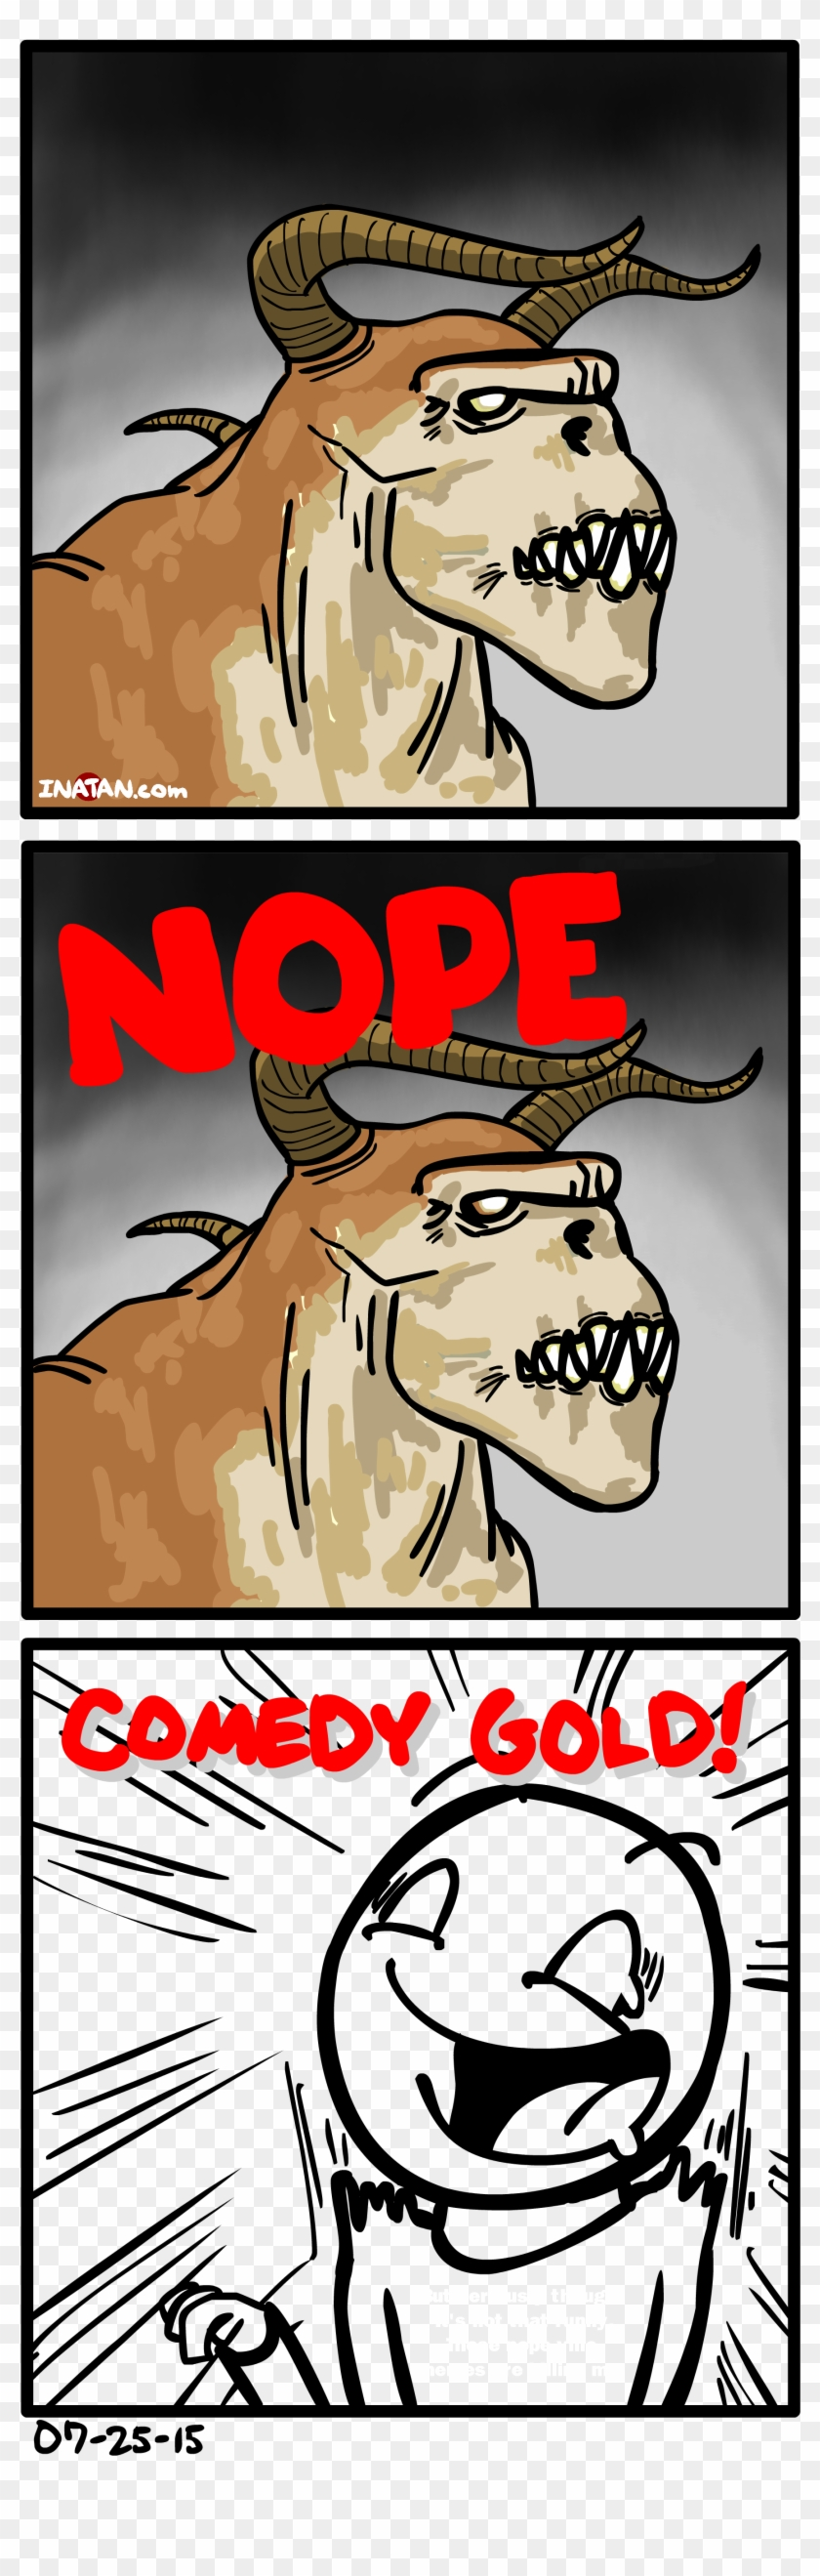 I Sometimes Enjoy Making Edgy Comics, Thoughts On Deathclaw - Fallout Deathclaw Comic Clipart #5288685